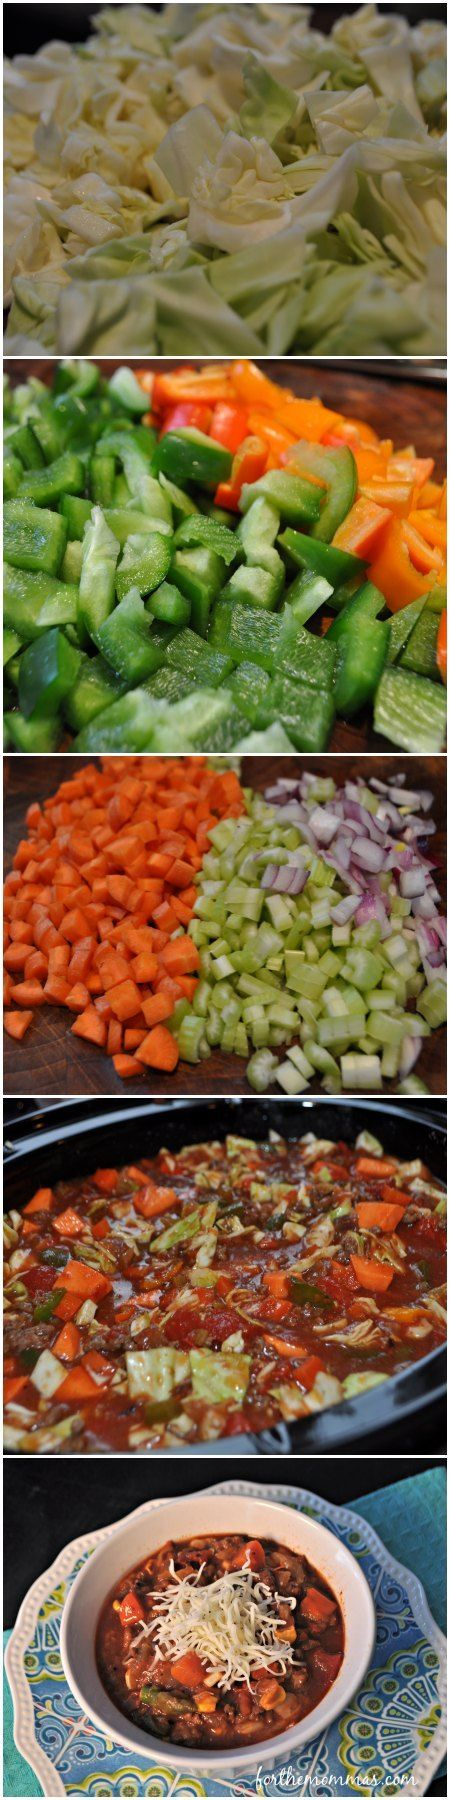 Slow Cooker Cabbage Soup - This has become my favorite crock pot soup. It is rich and hearty while being healthy. You will love the complex flavor of this soup and it is even better the next day!`